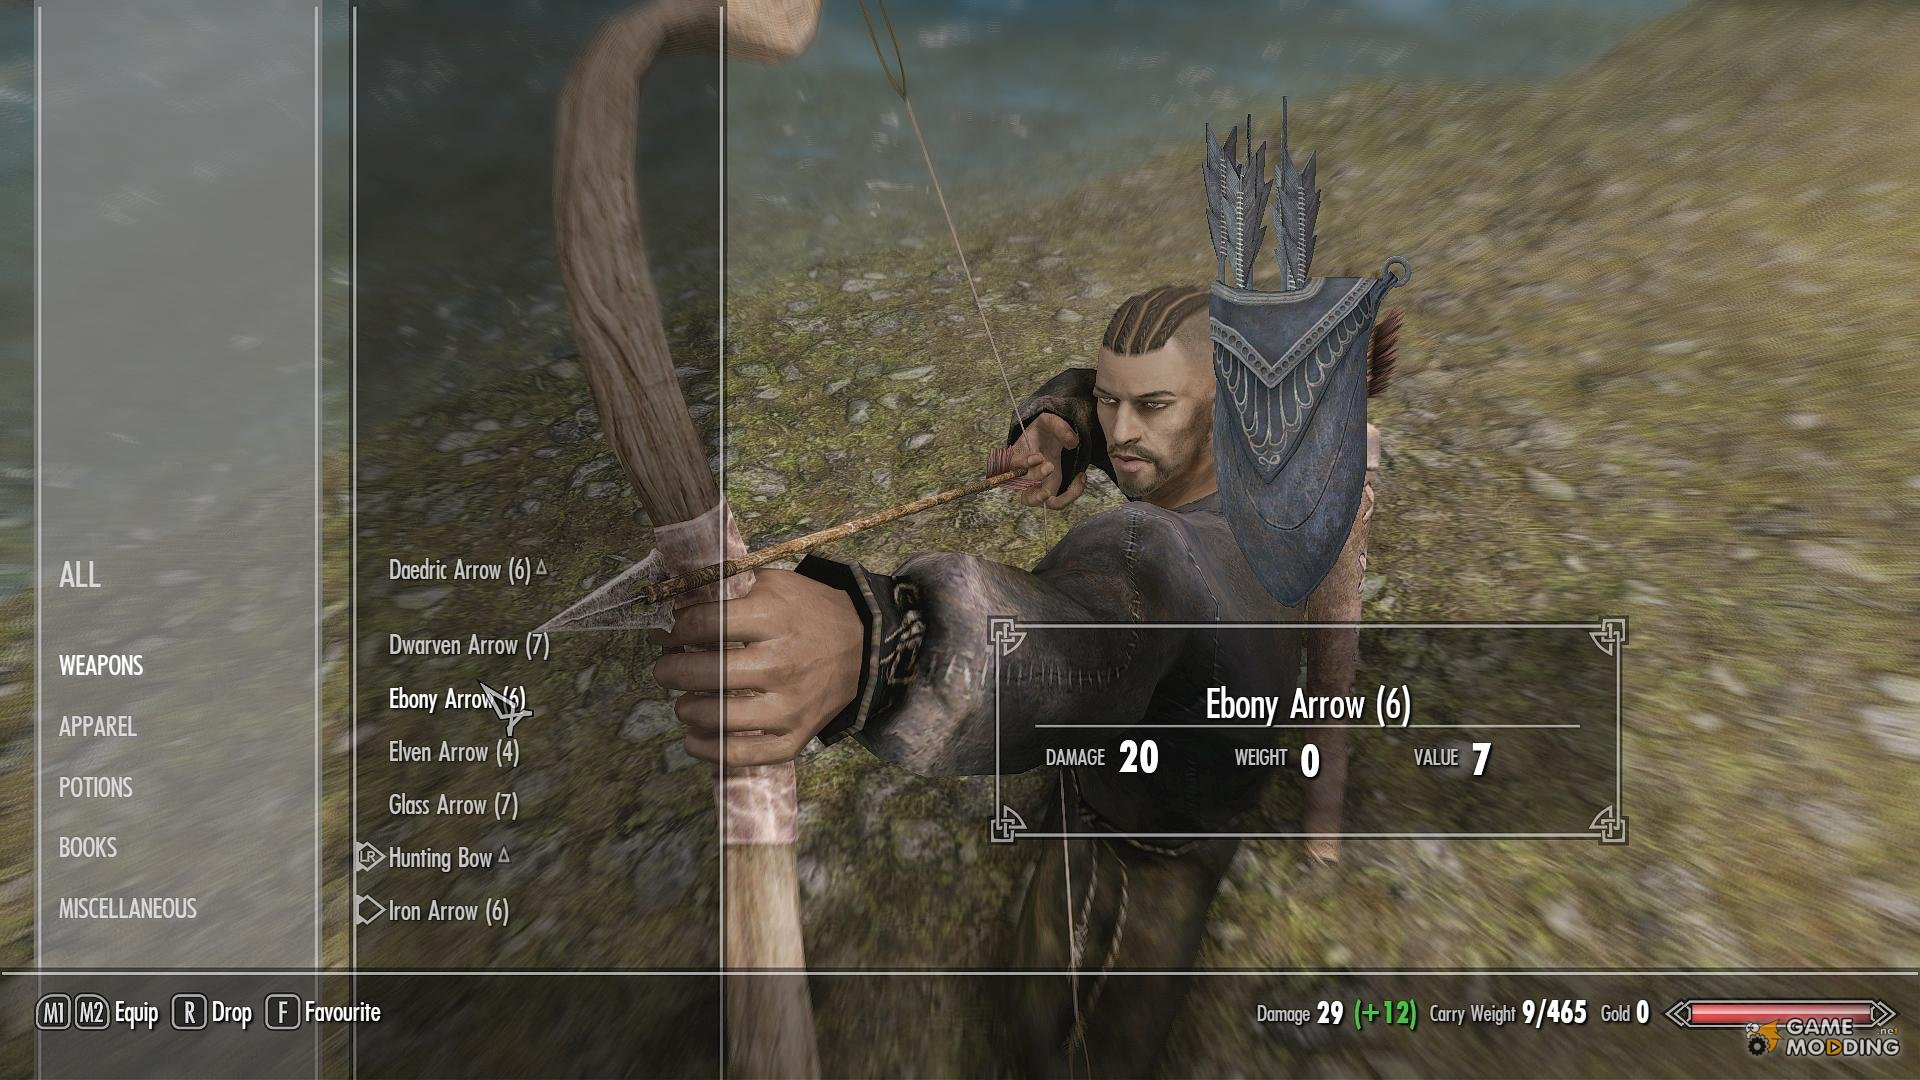 Can You Craft Arrows In Skyrim